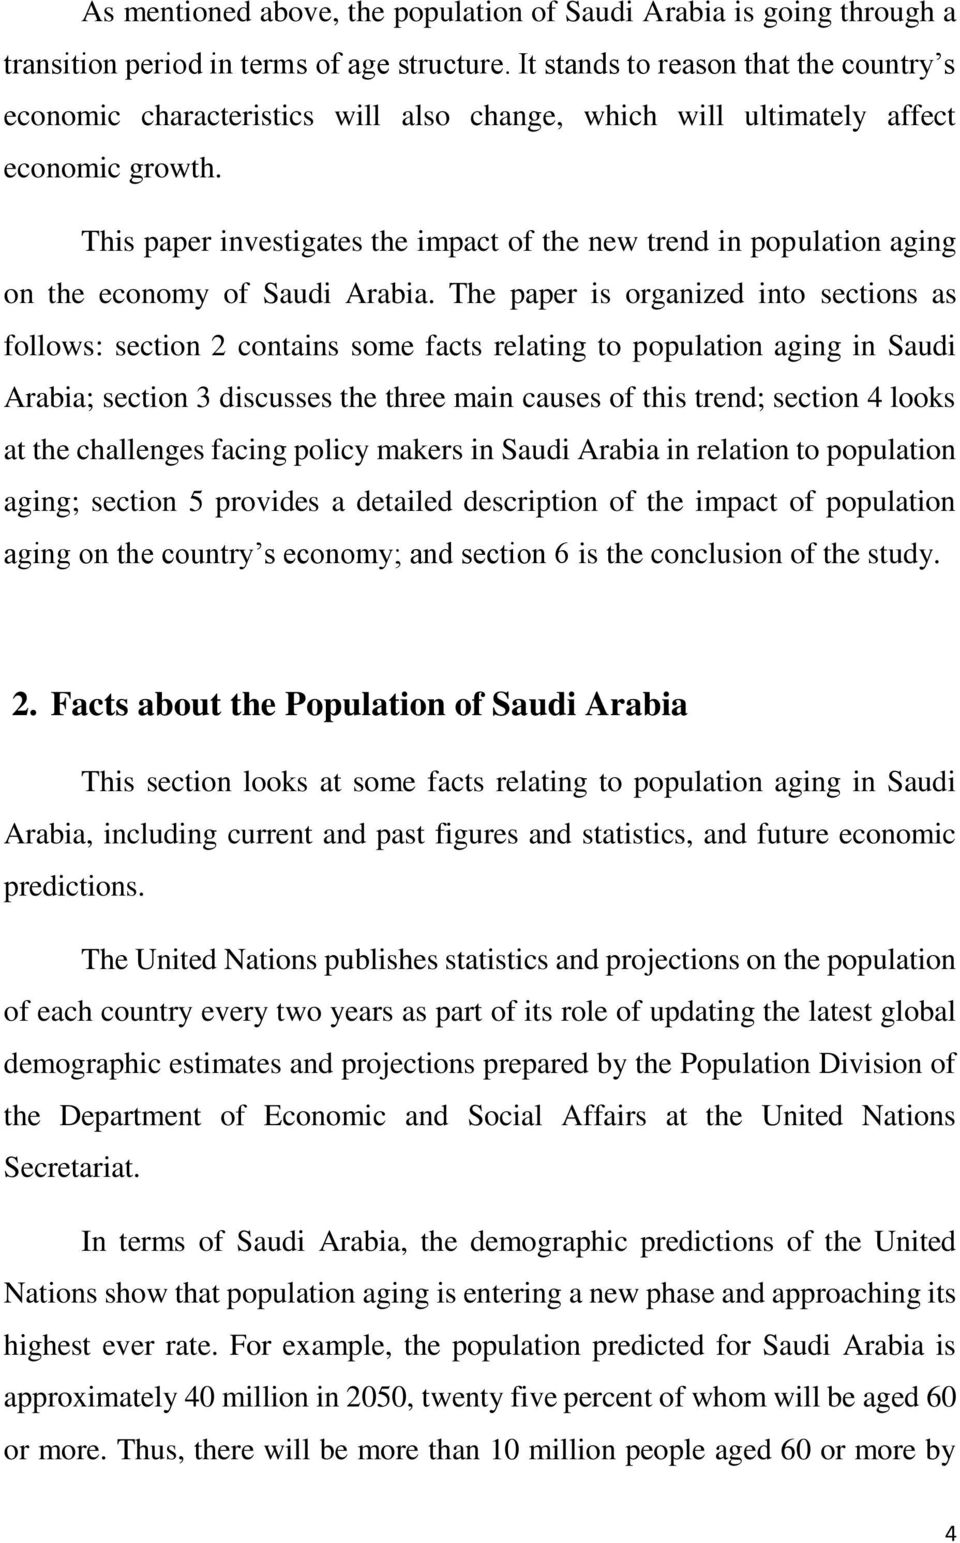 This paper investigates the impact of the new trend in population aging on the economy of Saudi Arabia.